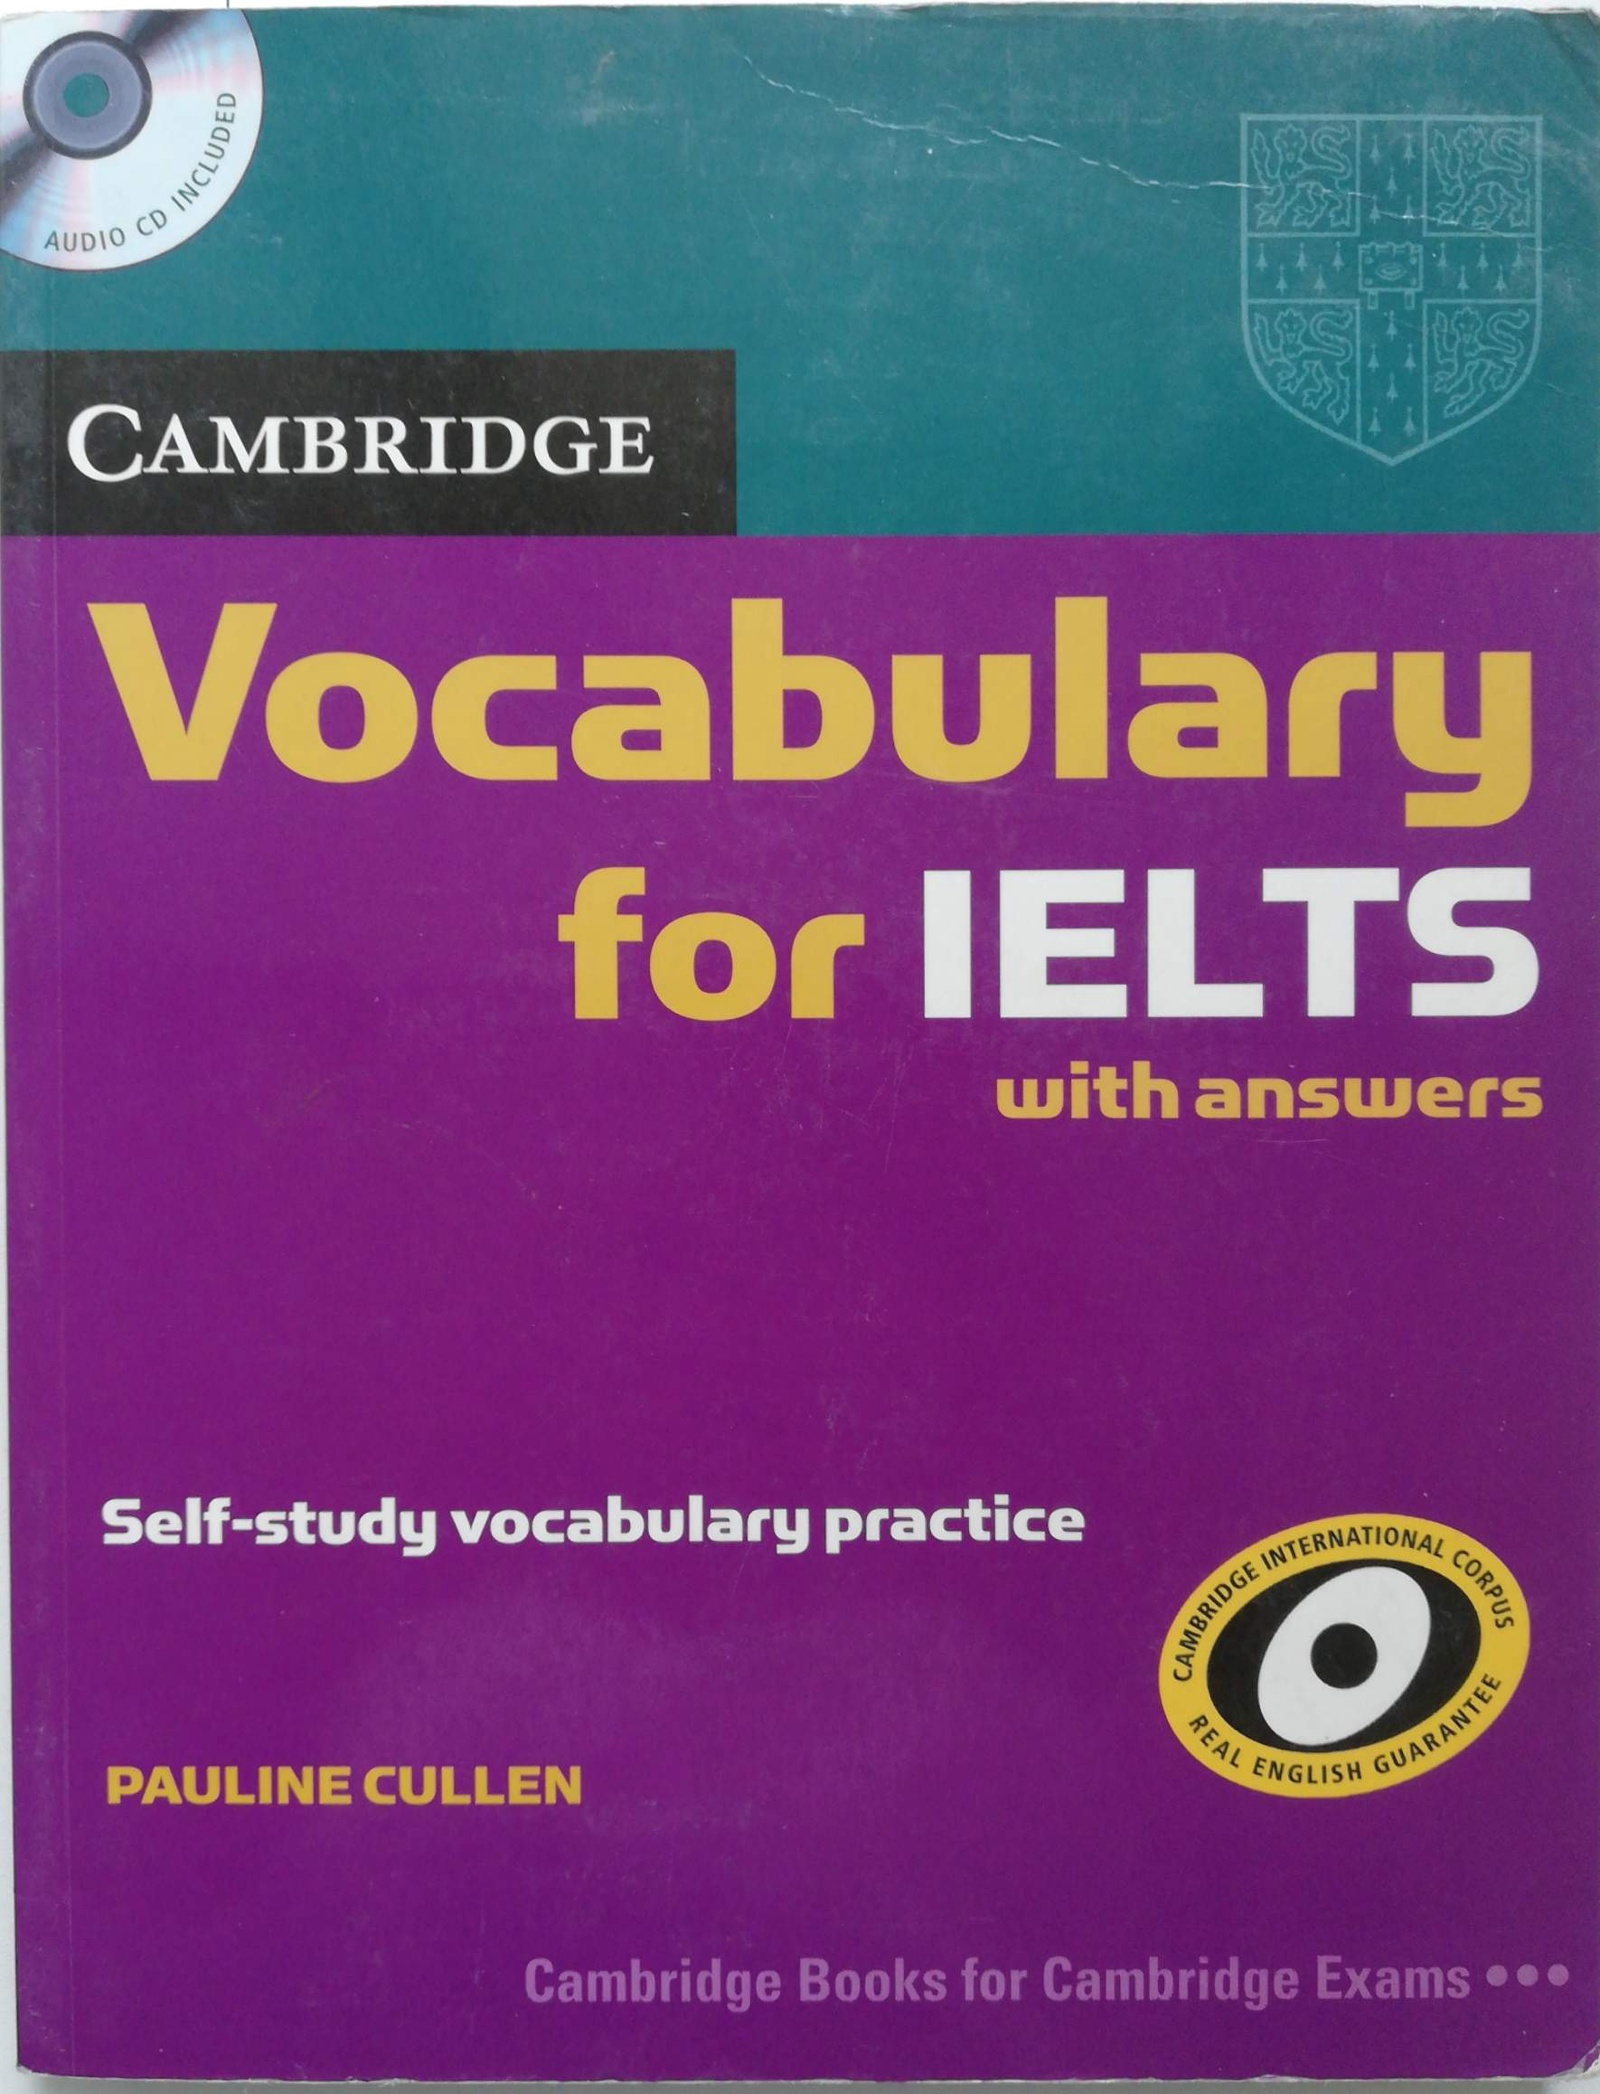 Cullen Pauline Cambridge Vocabulary for IELTS with answers cambridge plays the pyjama party elt edition cambridge storybooks